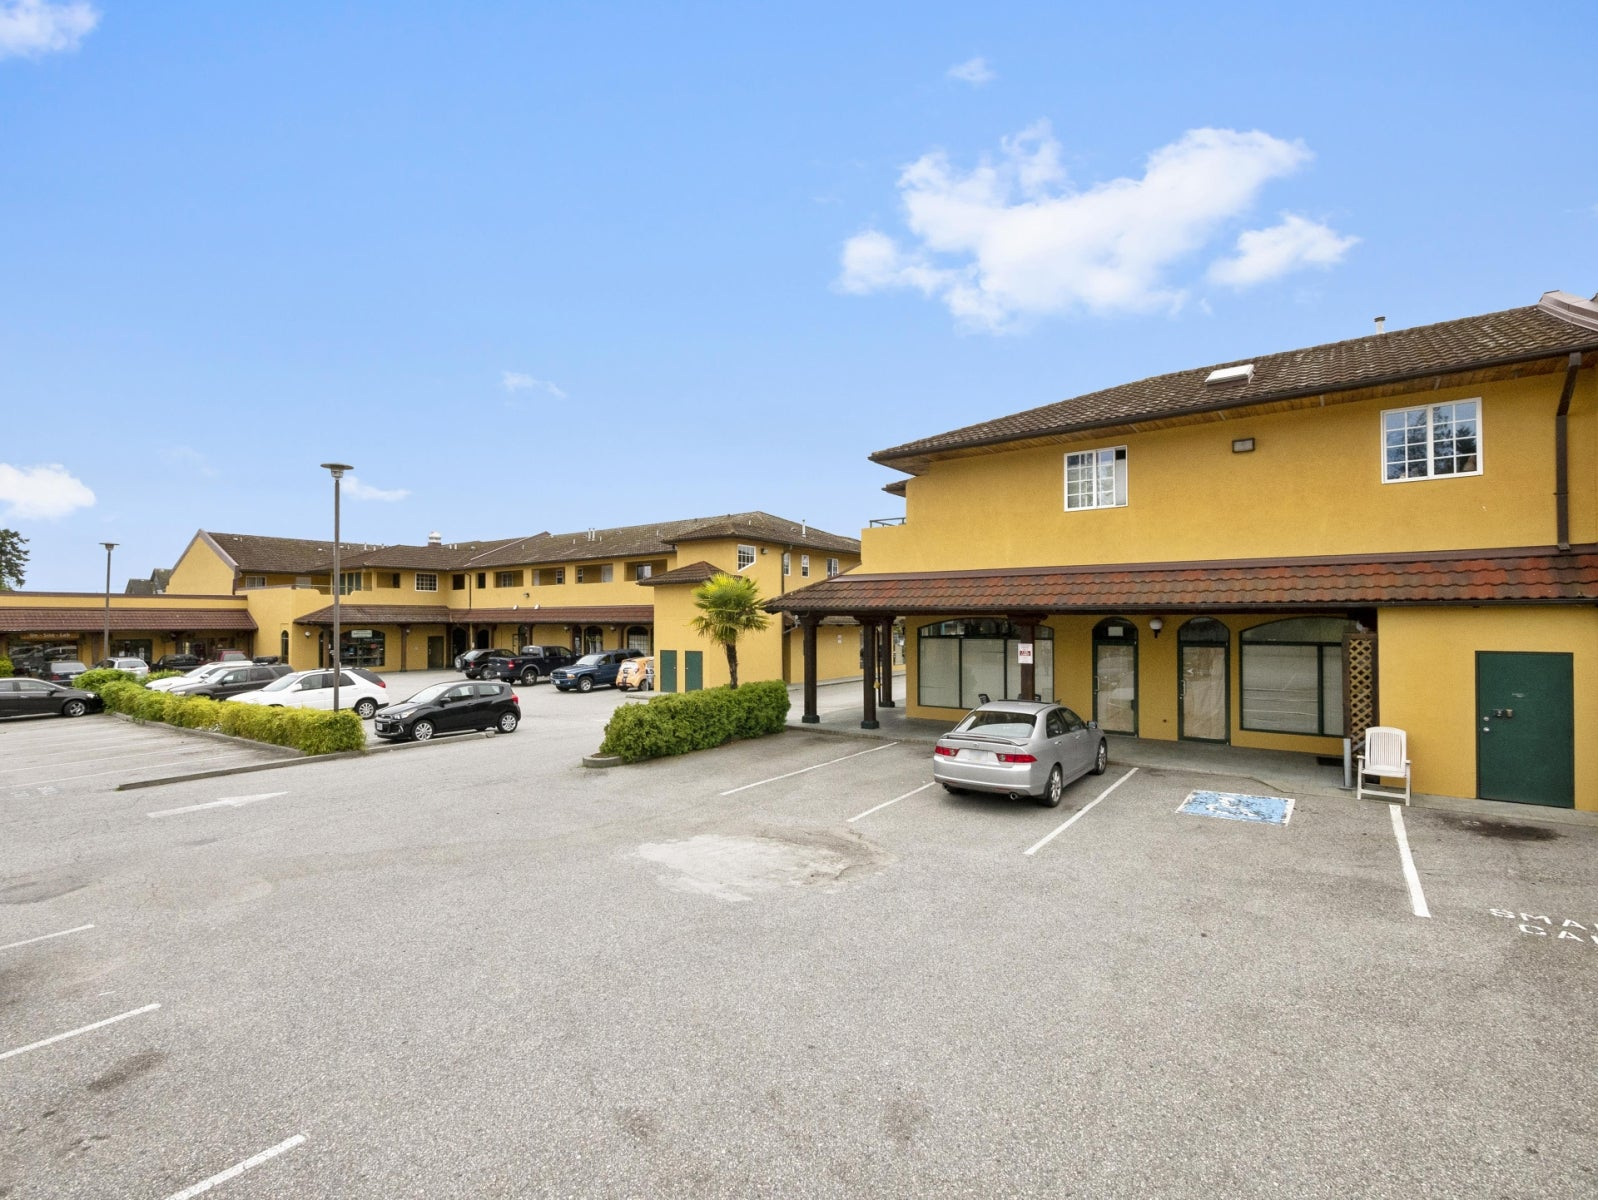 DAPHNE'S MEDITERRANEAN GRILL    5530 Wharf Ave, Sechelt BC V0N 3A0 - Sechelt District COMM for sale(C8018948) #6